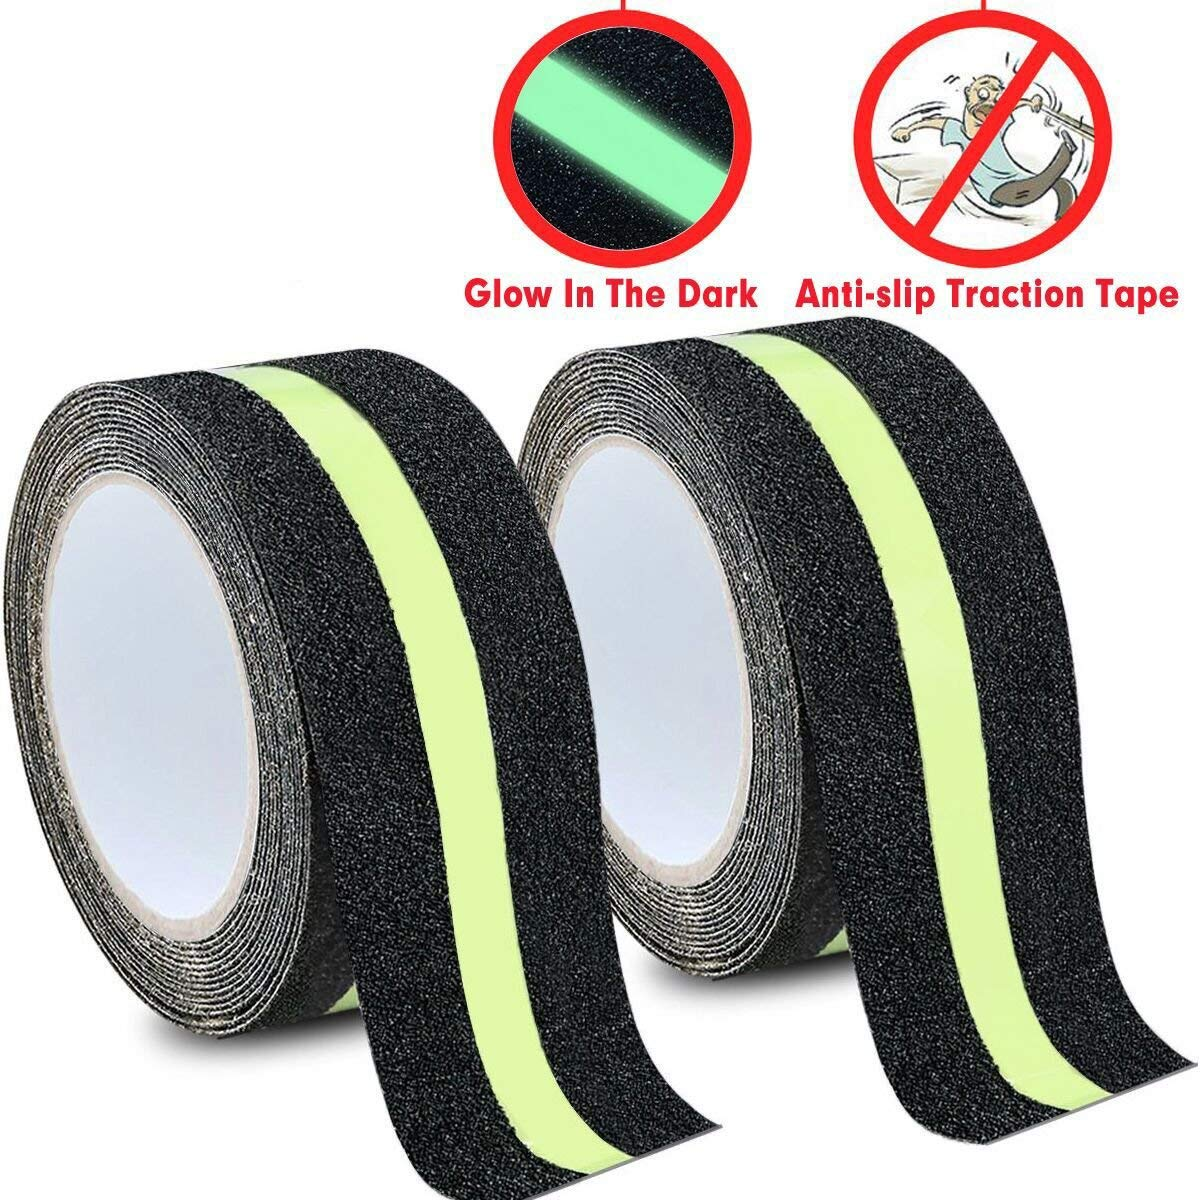 DEALIKEE Anti Slip Traction Tape, None Skid Glow in The Dark Walk Strip Safety Tape with 3M Best Grip Abrasive Adhesive for Stairs, Tread Step, Gaffers.(2 Pack, 2'' Wide 16.4' Long Roll/1pc)